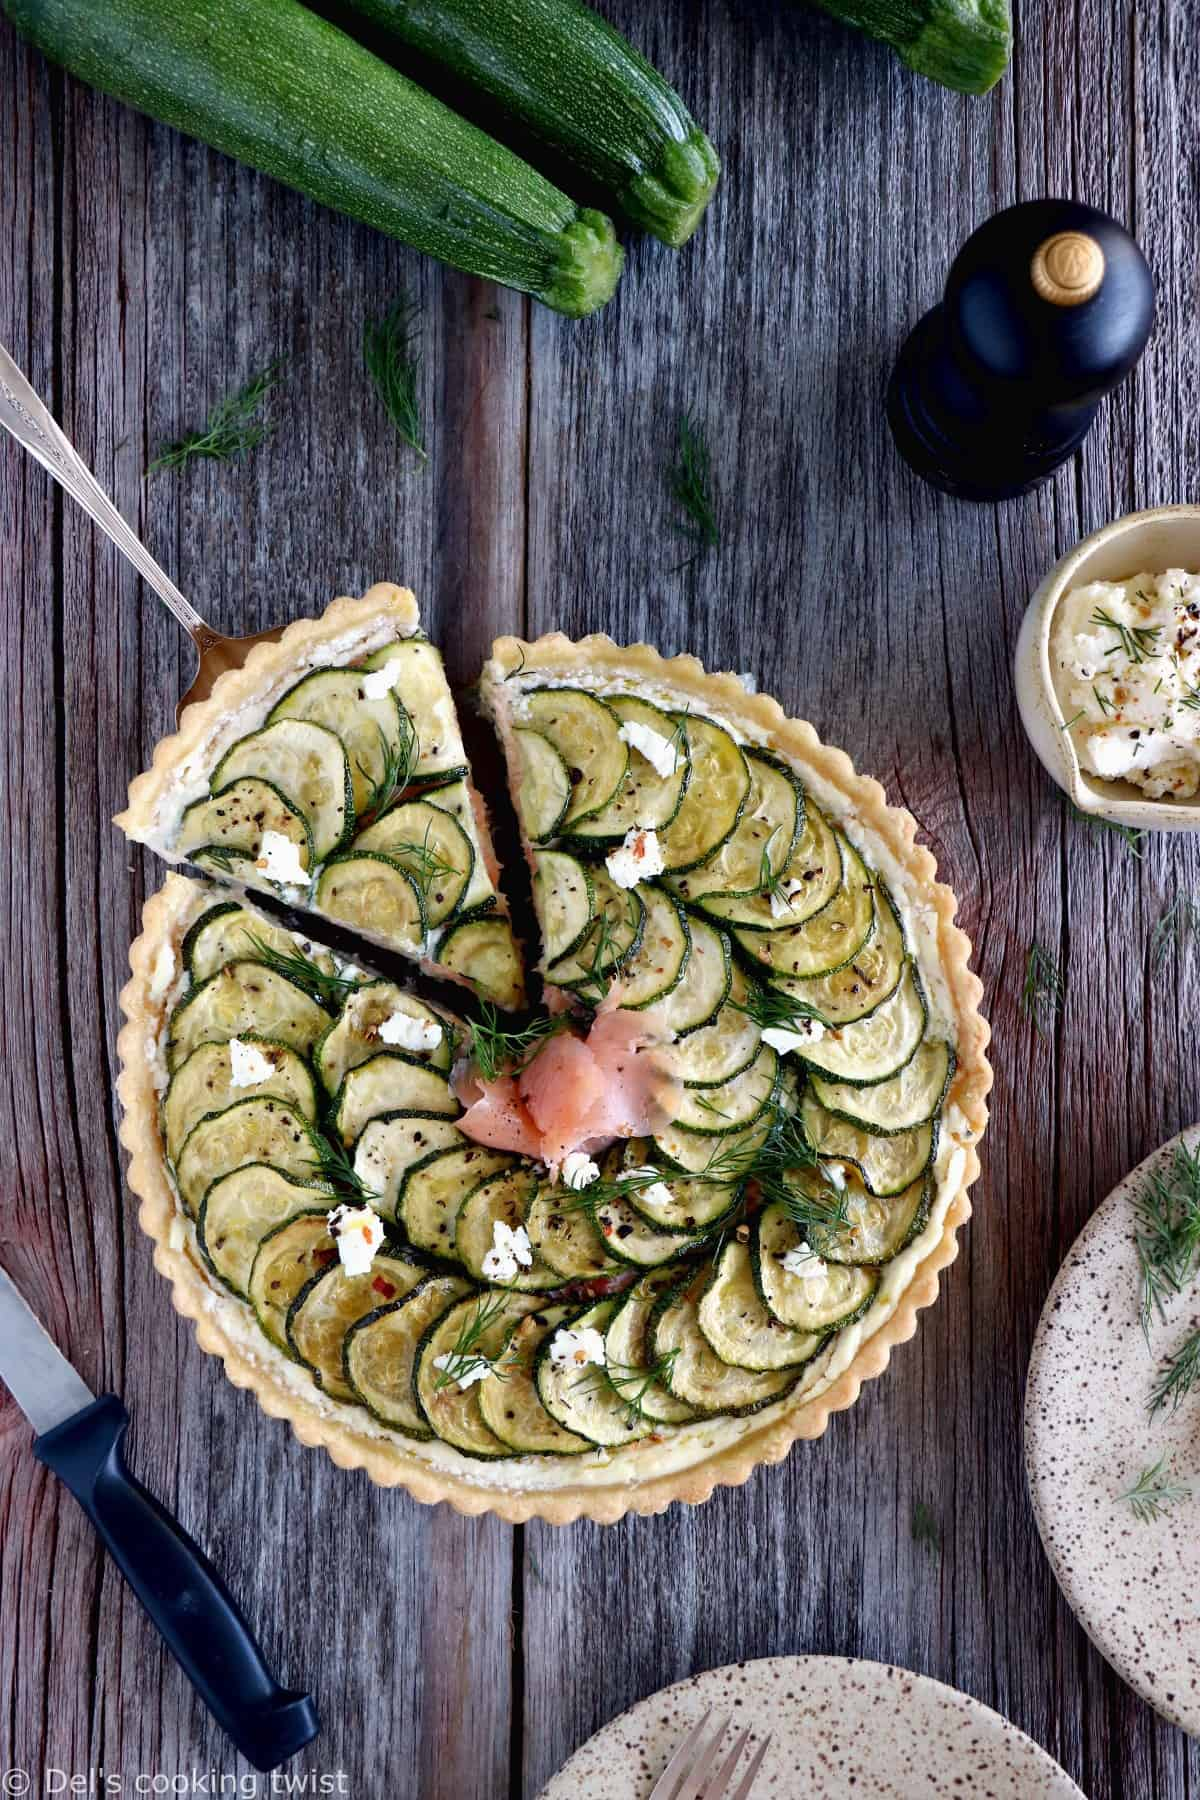 Salmon and Zucchini Ricotta Pie. Salmon and Zucchini Ricotta Pie is a delicious savory pie, bursting with fresh, creamy flavors and a subtle hint of dill.